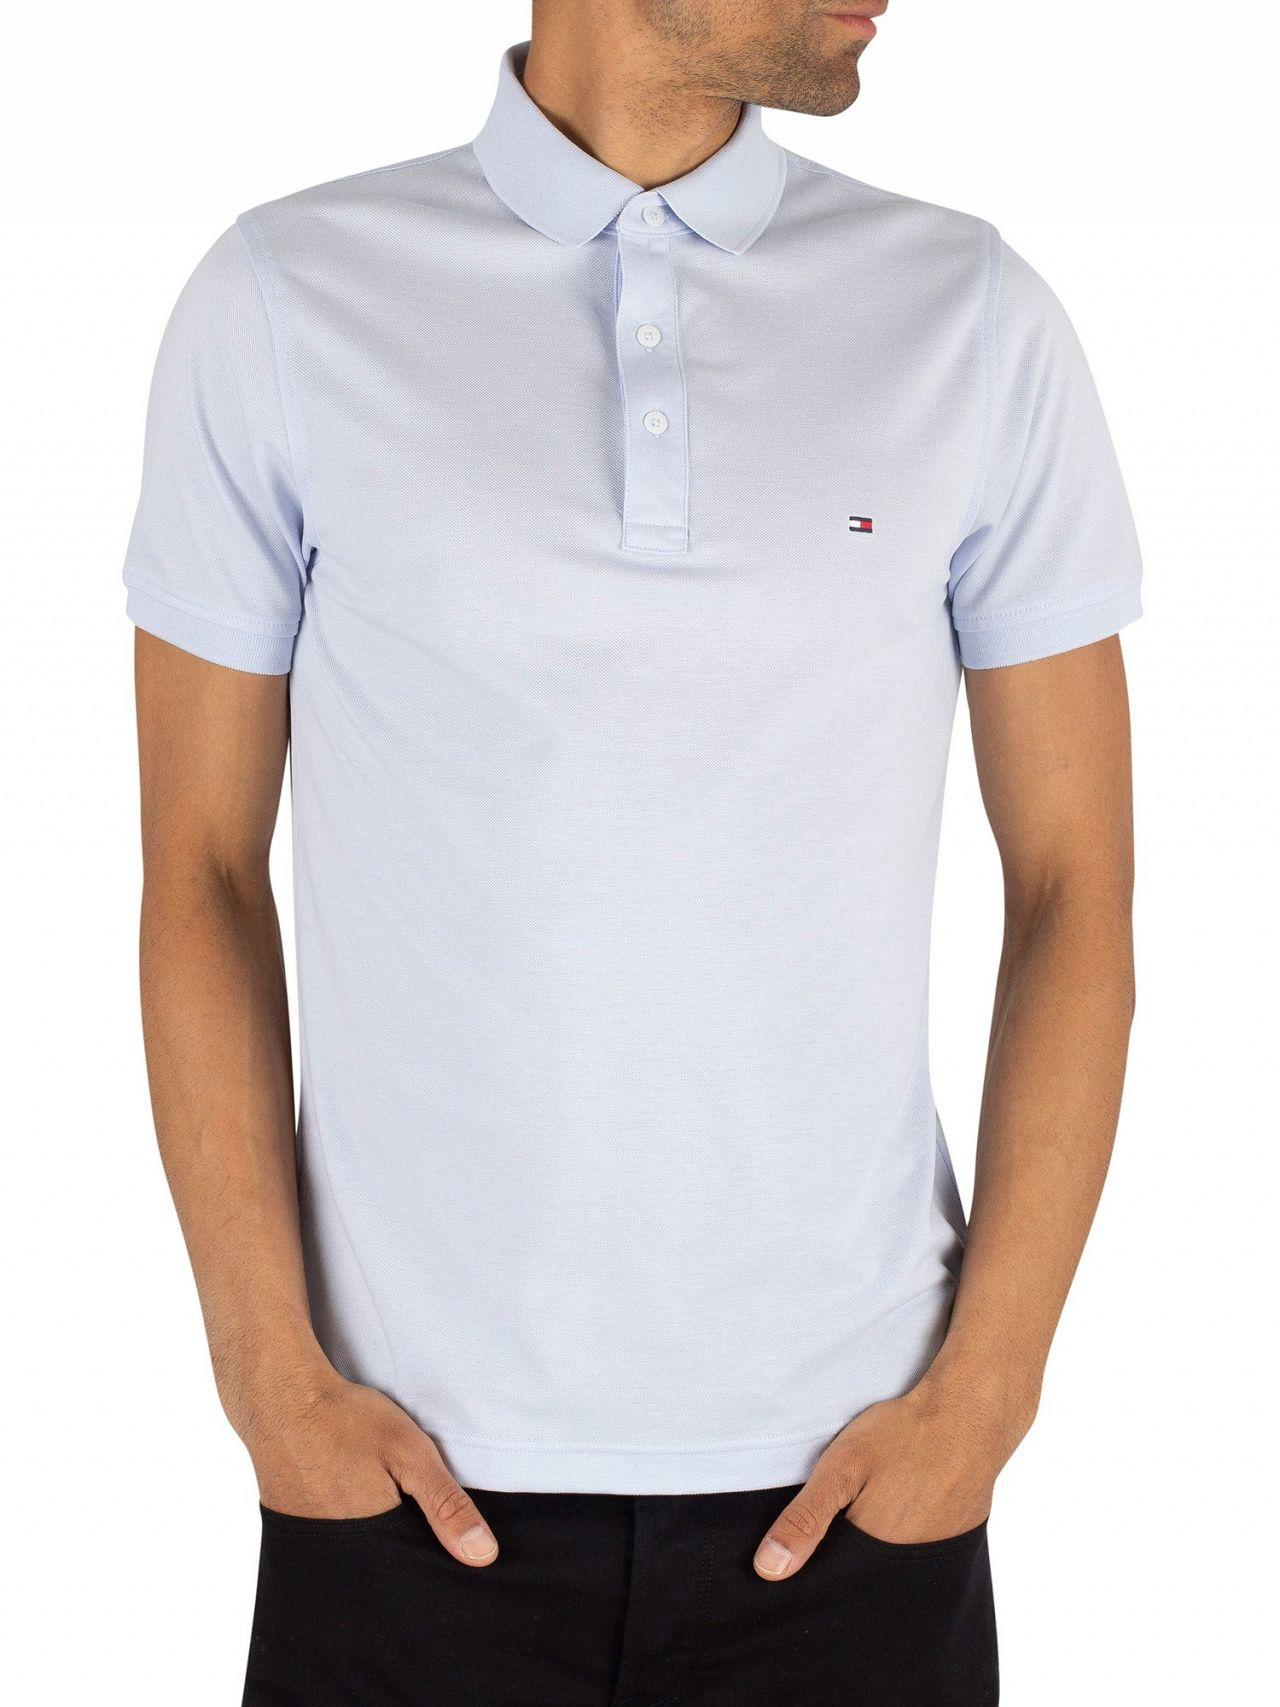 77d5563226aa Tommy Hilfiger Heather Slim Fit Poloshirt in Blue for Men - Lyst